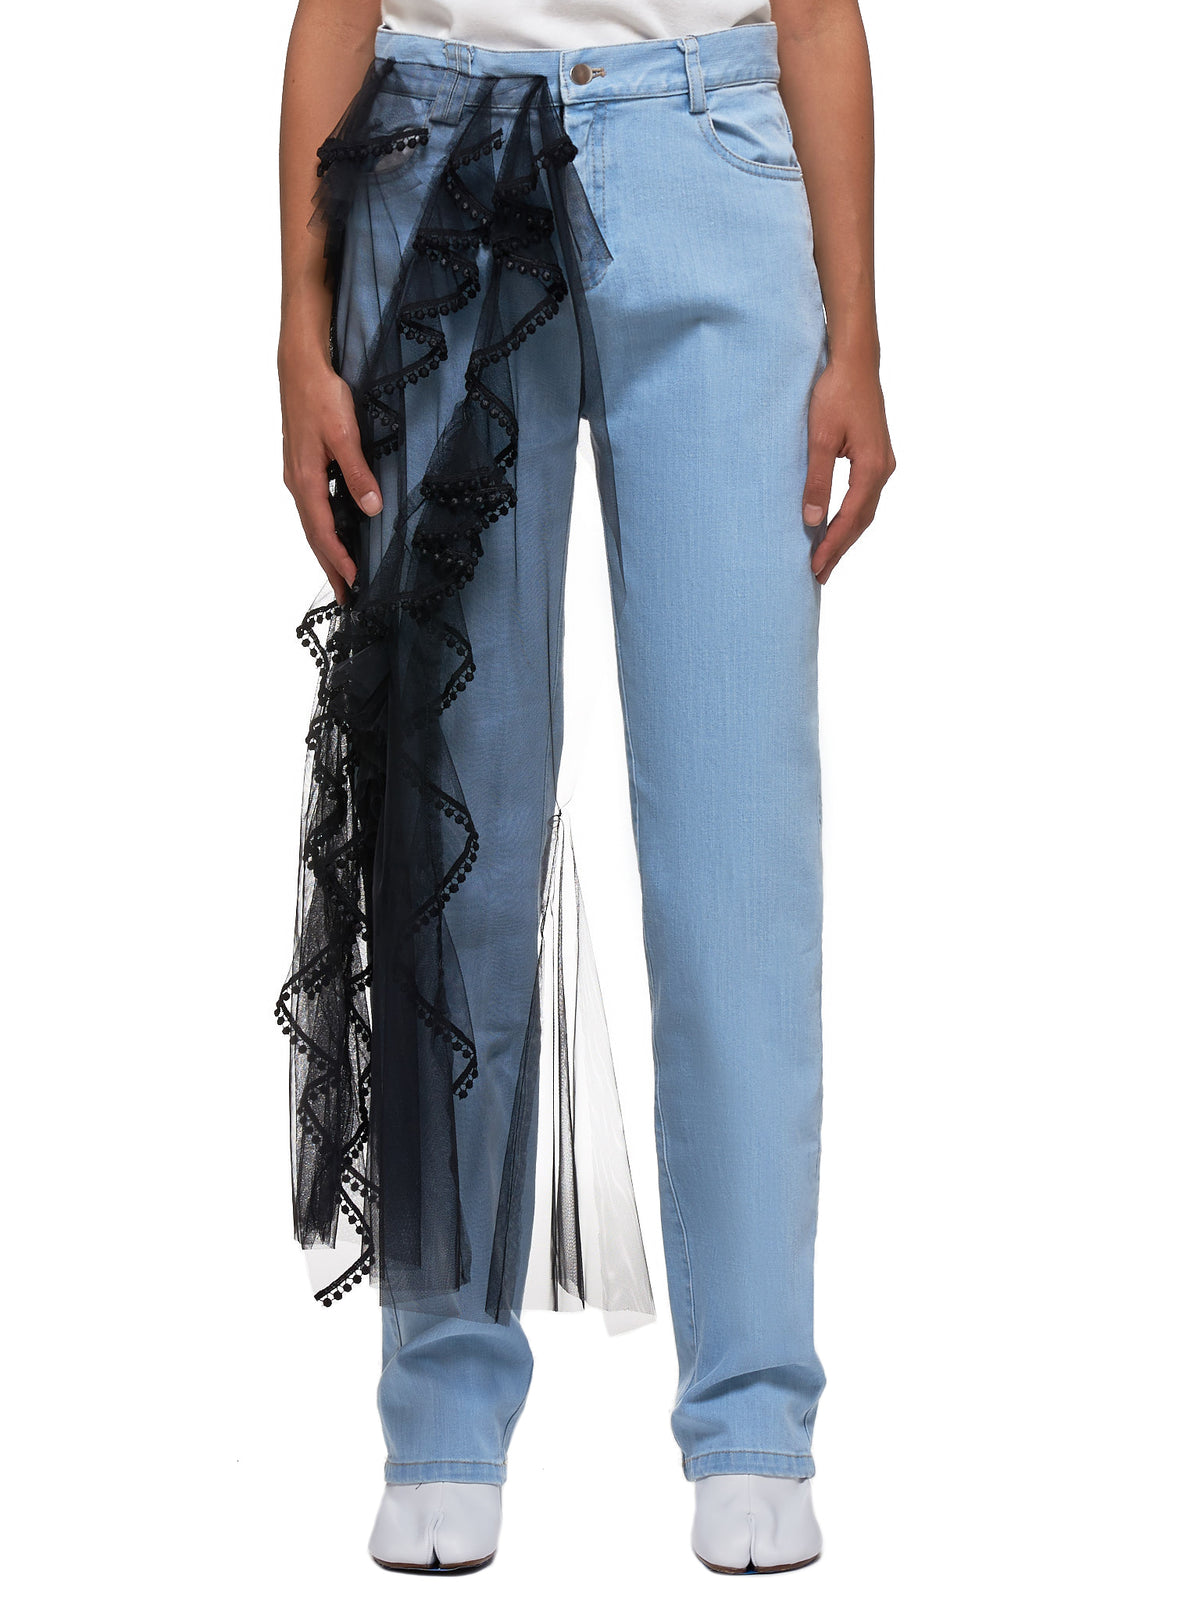 Veiled Denim Jeans (FWP1903-BLUE-BLACK)